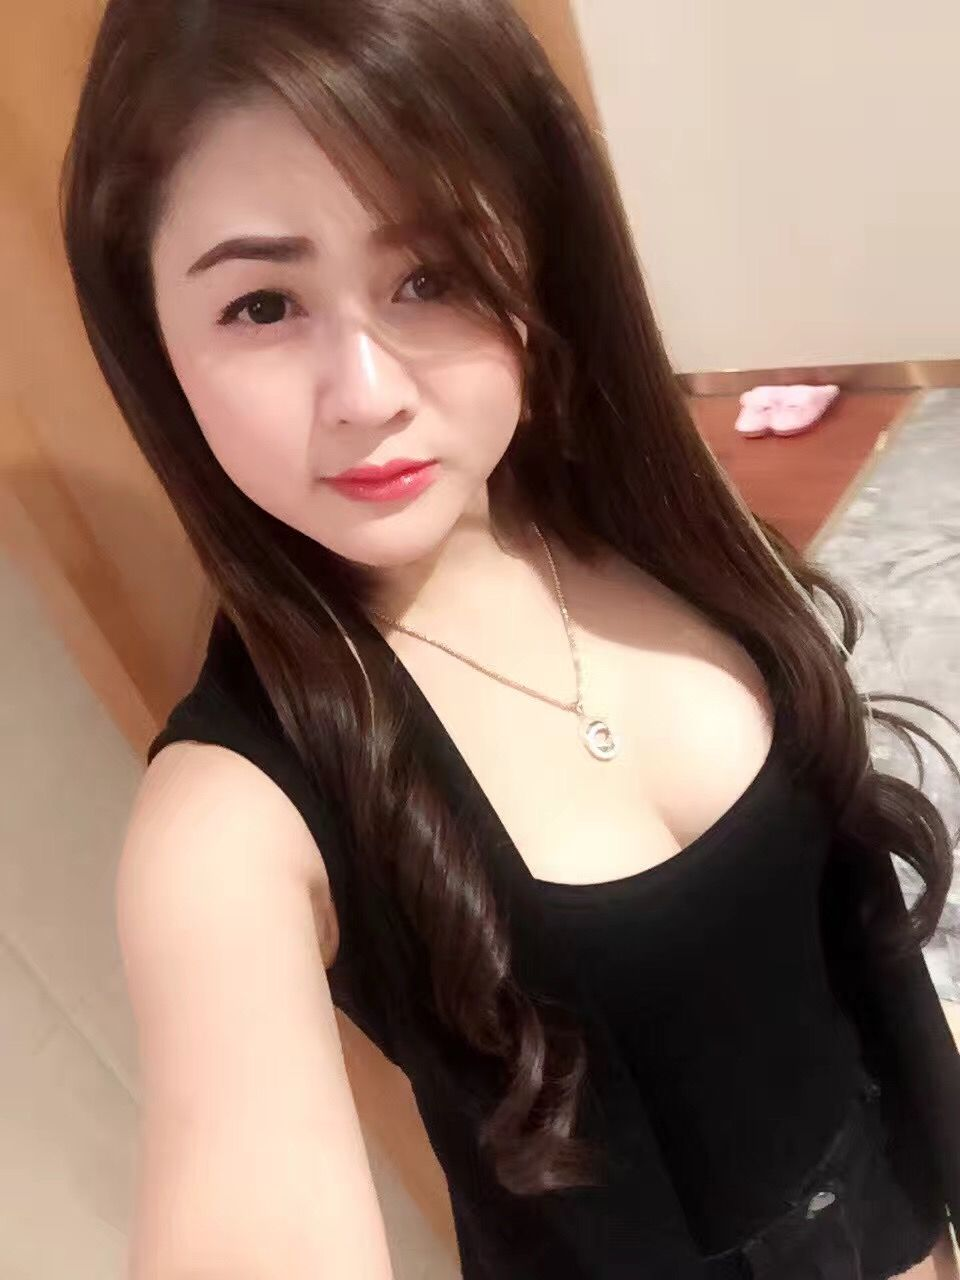 High class escort service in chandigarh 09646870399 zirakpur - 5 4